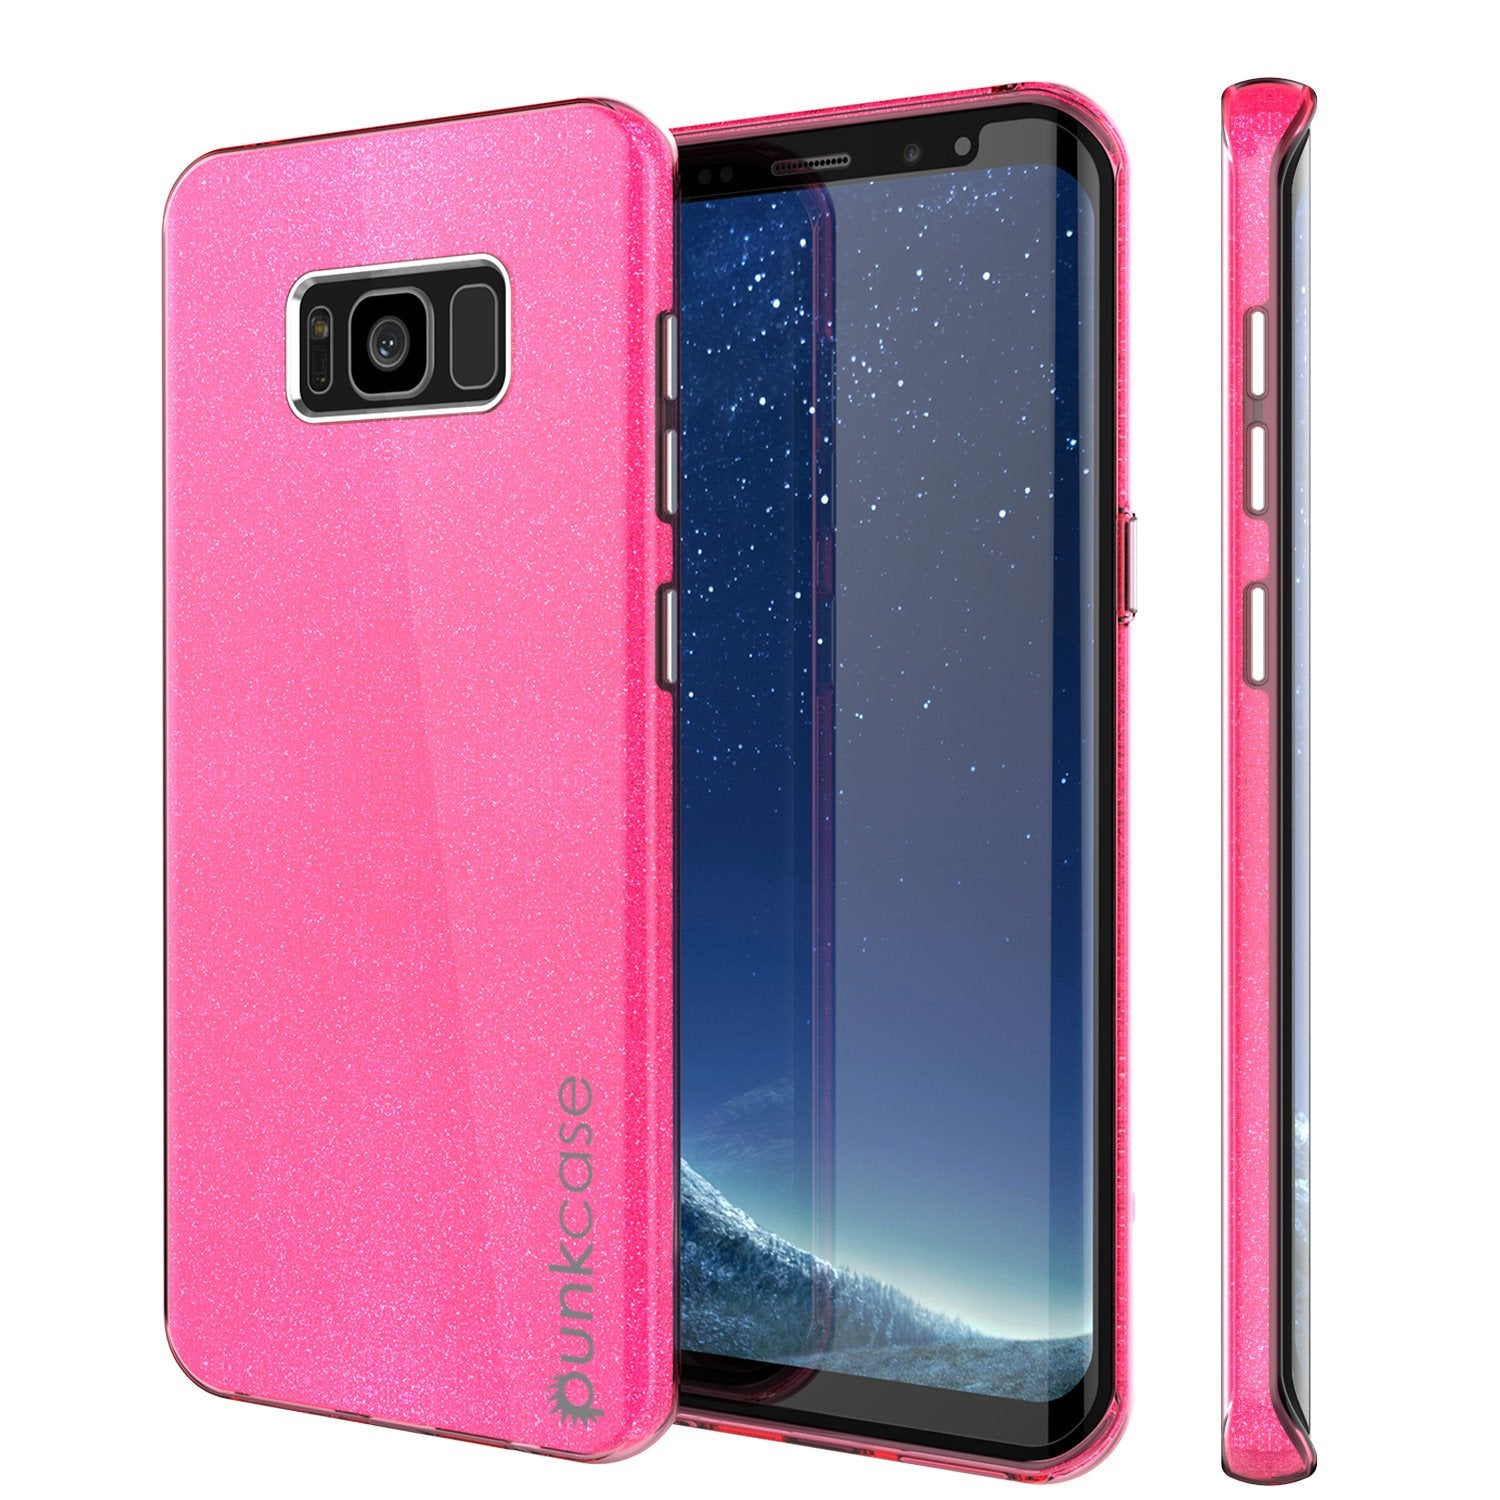 Galaxy S8 Plus Punkcase Galactic 2.0 Series Ultra Slim Case [Pink]